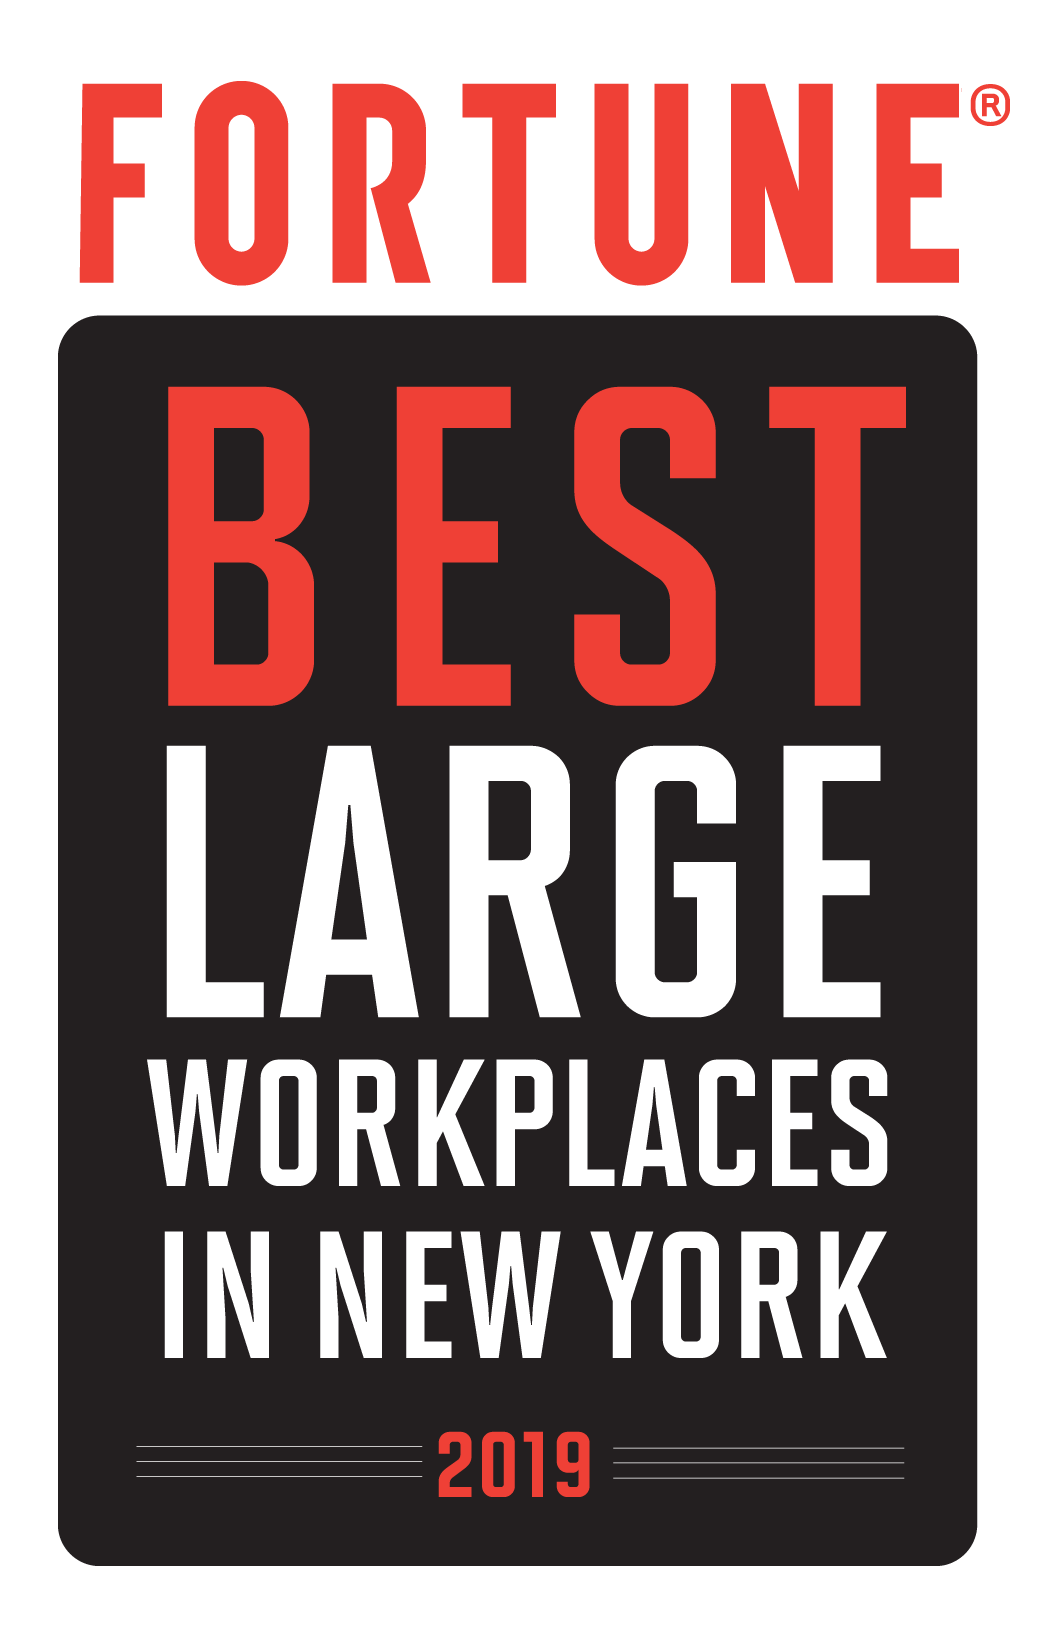 Senior Helpers is one of Fortune's Best Large Workplaces in New York 2019